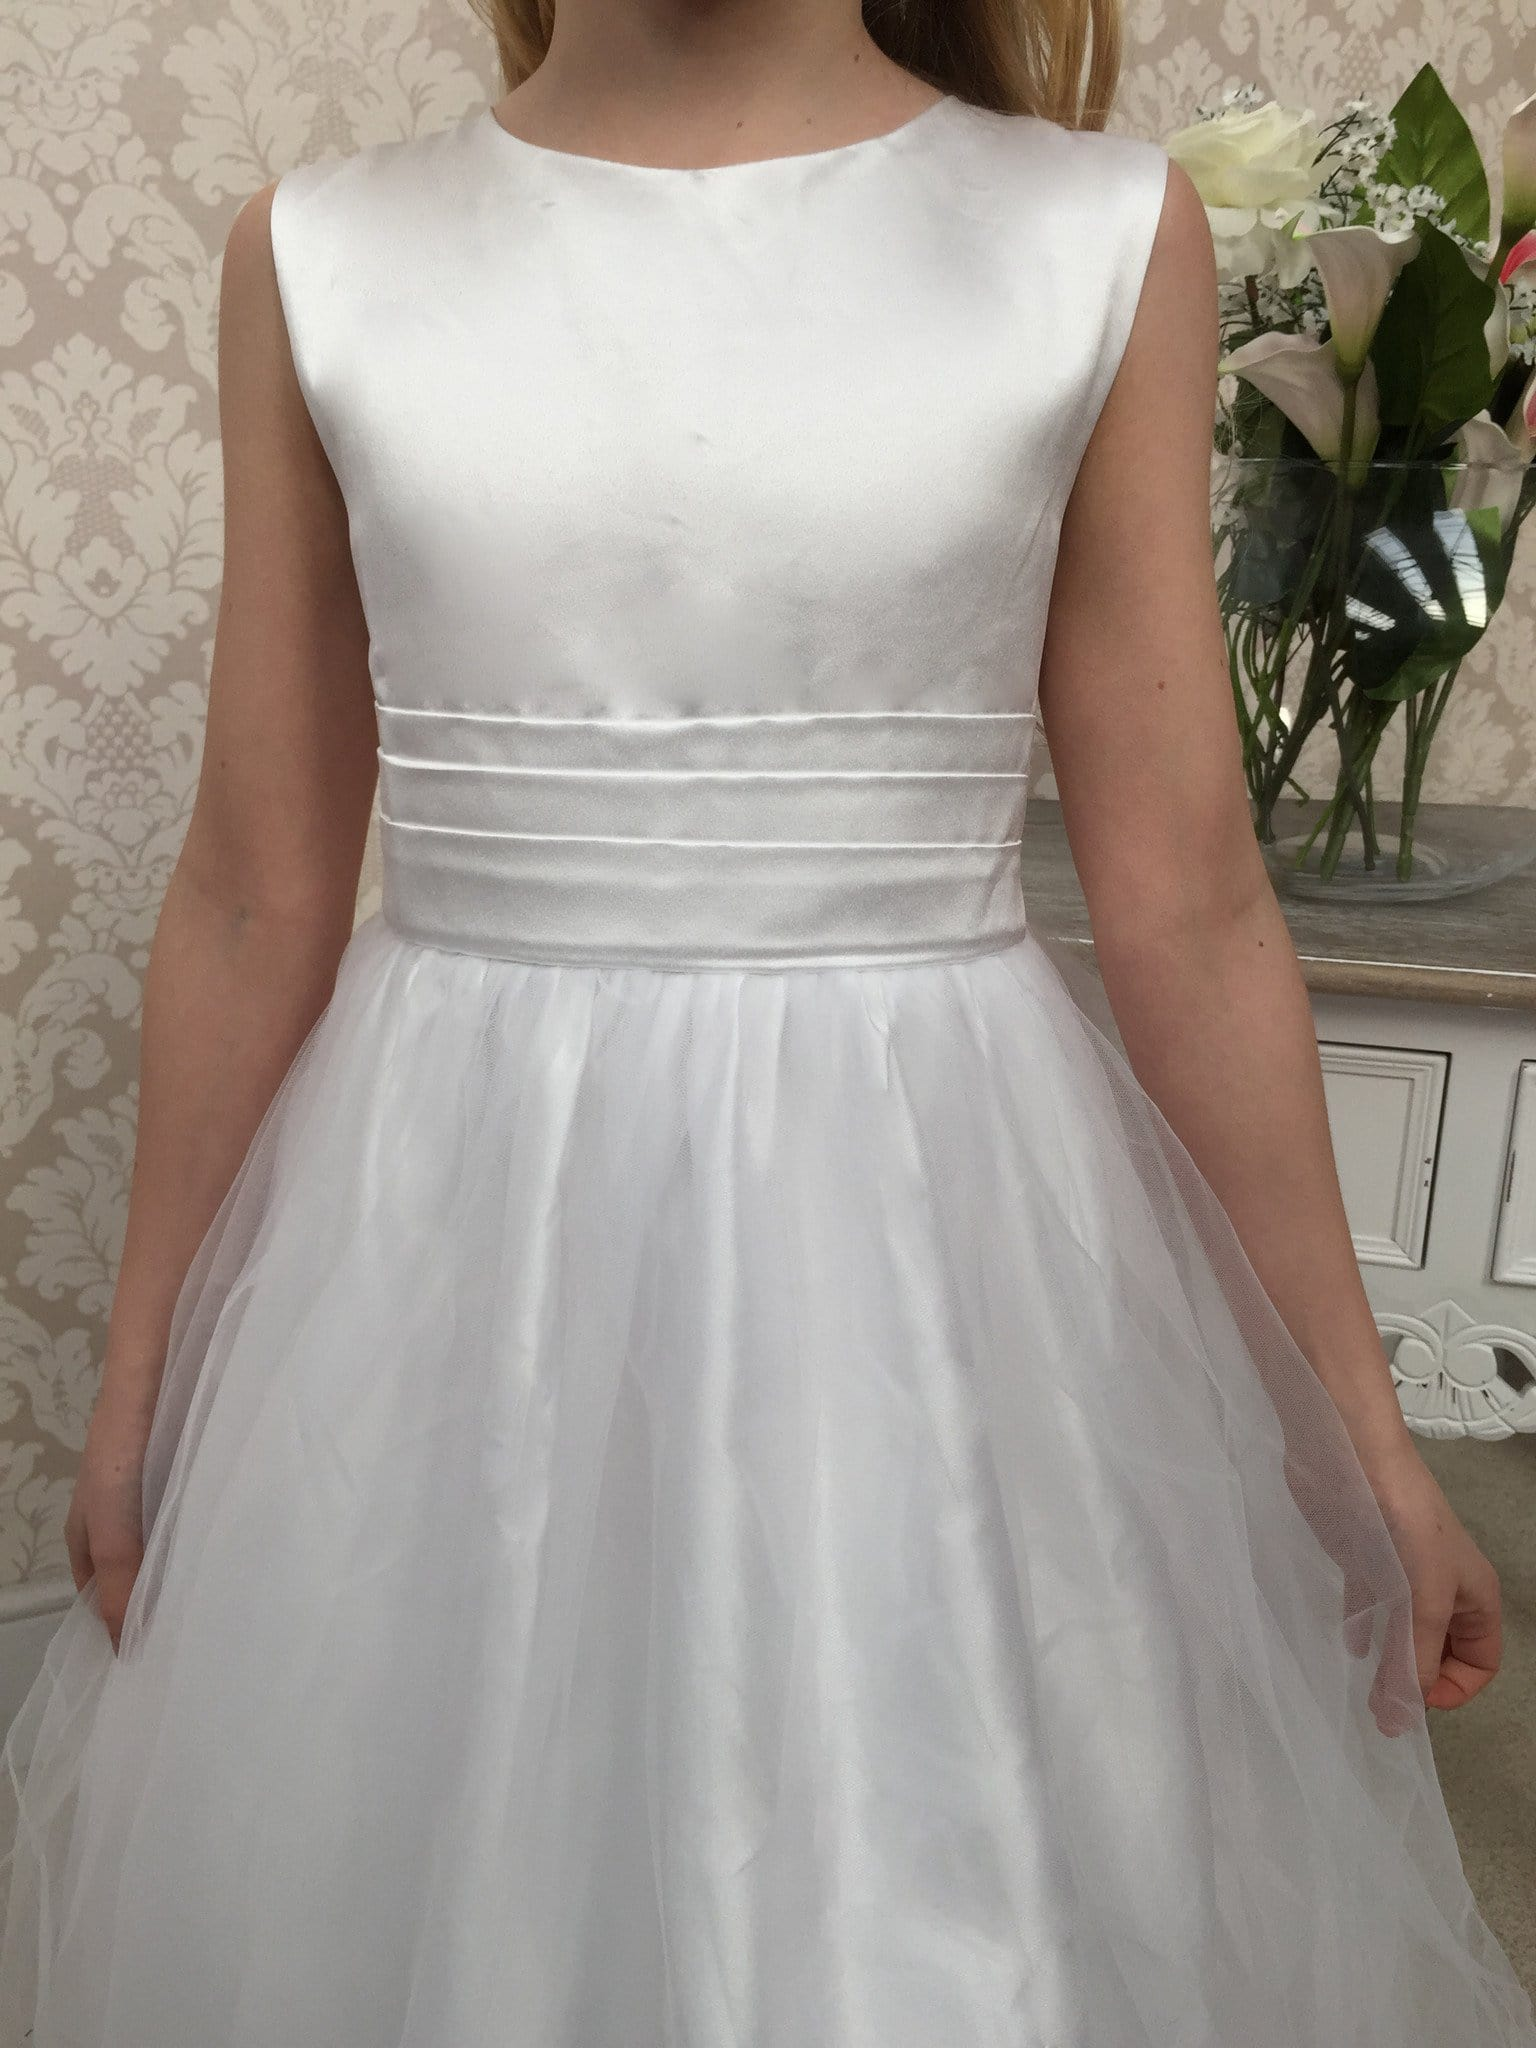 Bellé Dress - That Special Day Bridal Warehouse